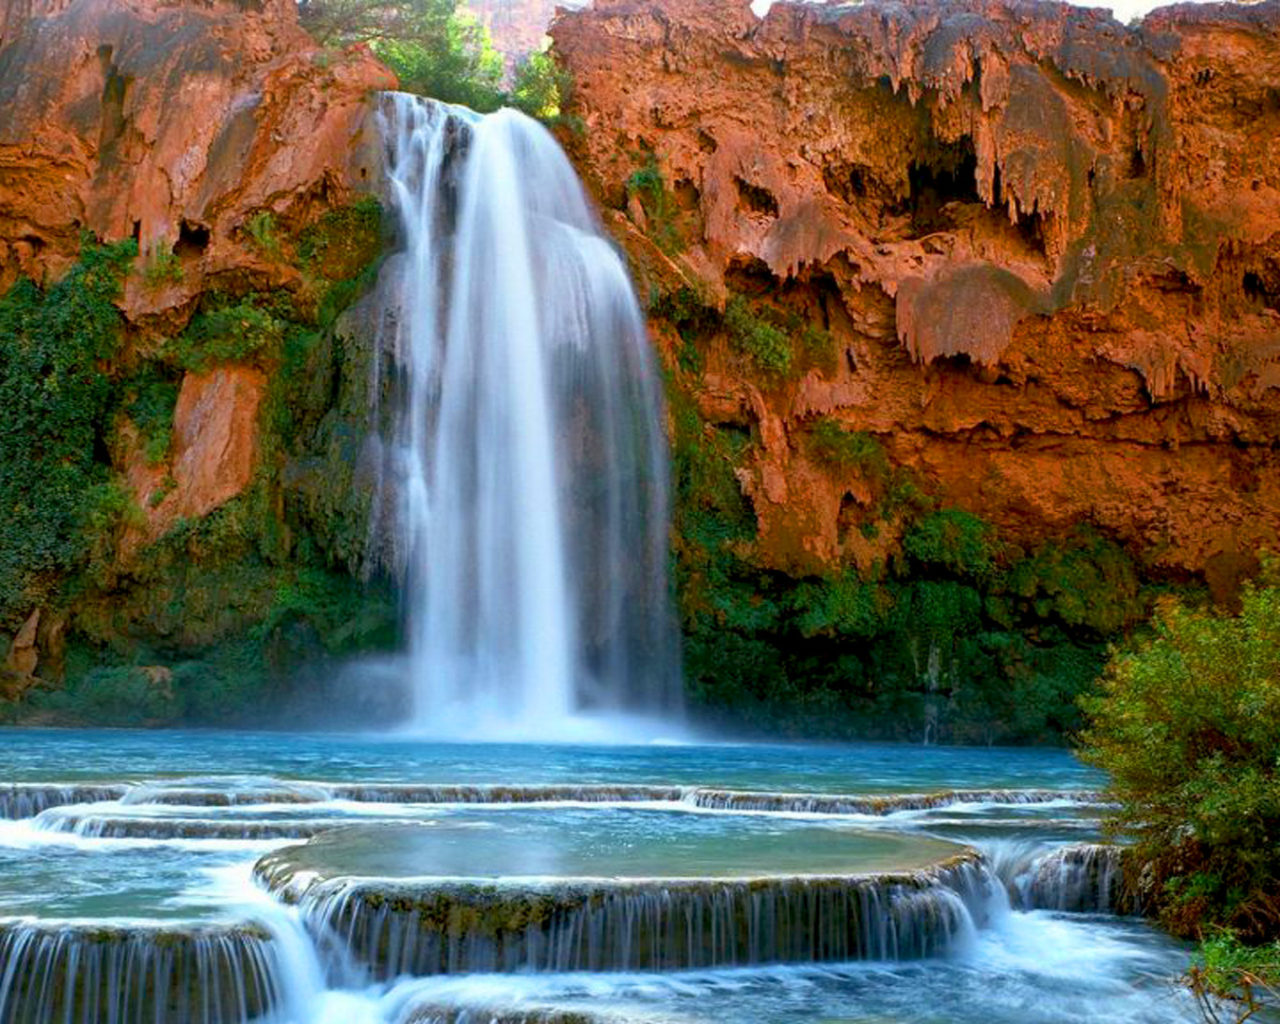 Niagara Falls Wallpaper Nature Havasu Falls Havasupai Arizona U S Desktop Hd Wallpaper